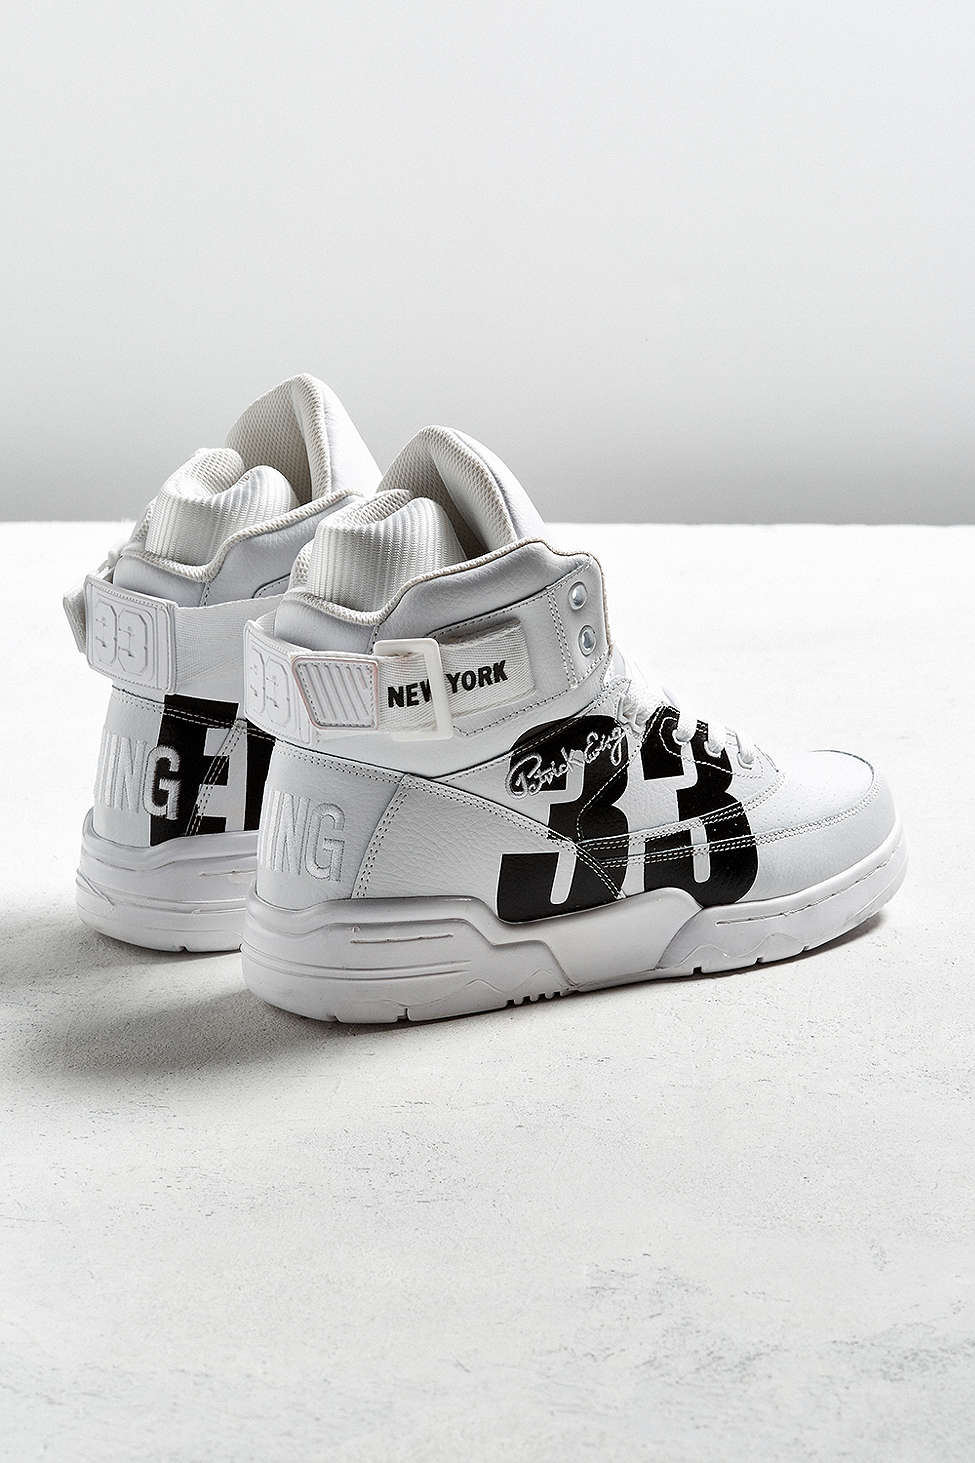 urban outfitters x ewing 33 hi NYC white black 2